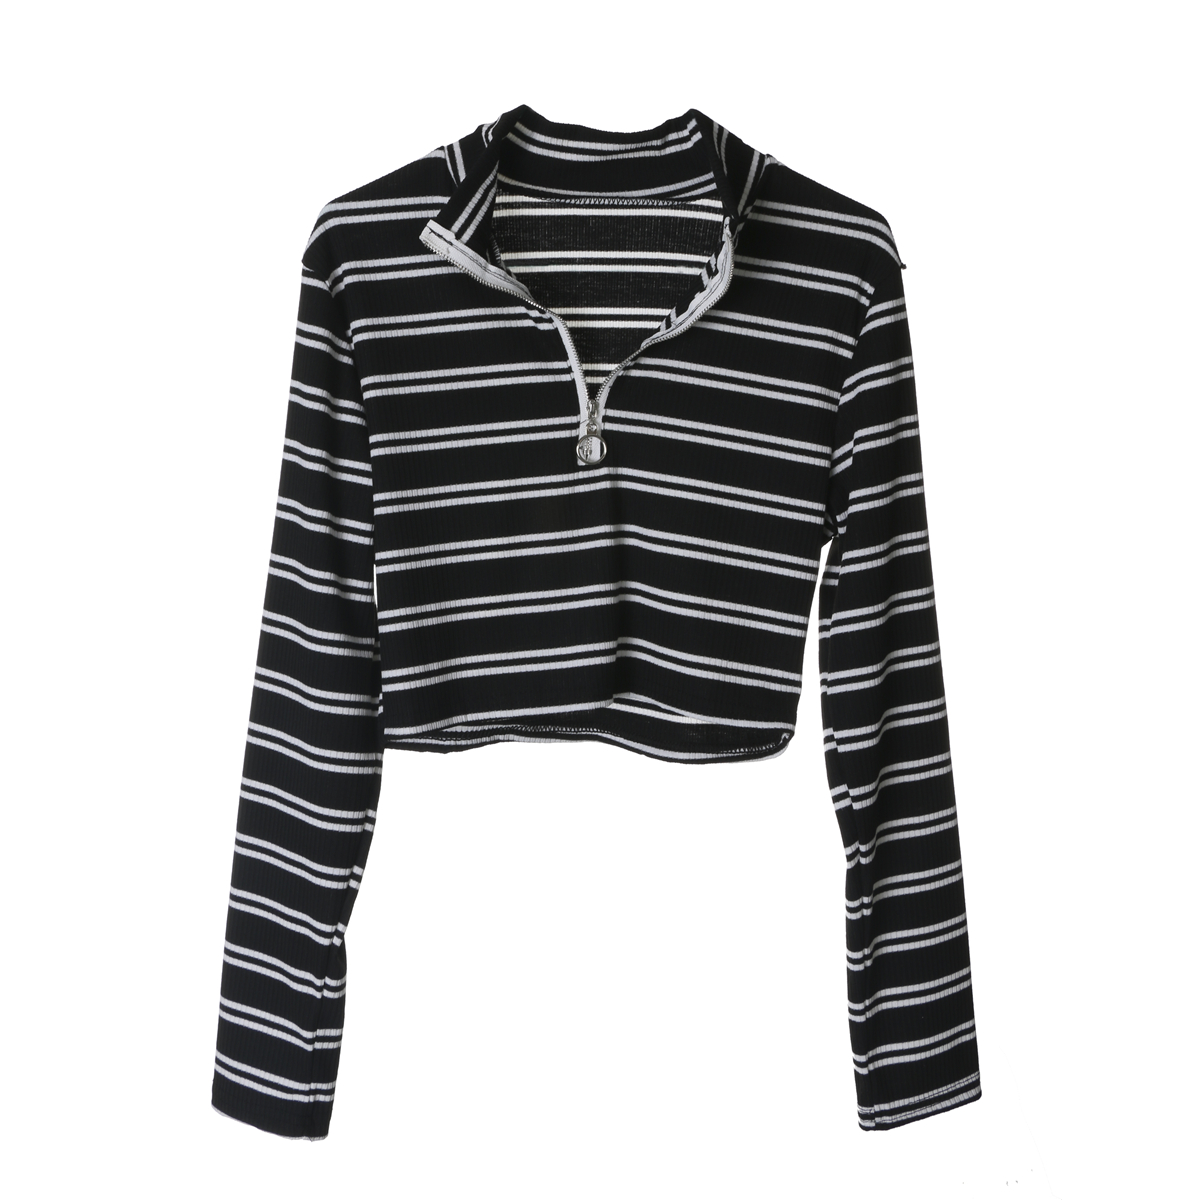 87e01dfc2d6 Black And White Striped Long Sleeve Womens Shirt - raveitsafe